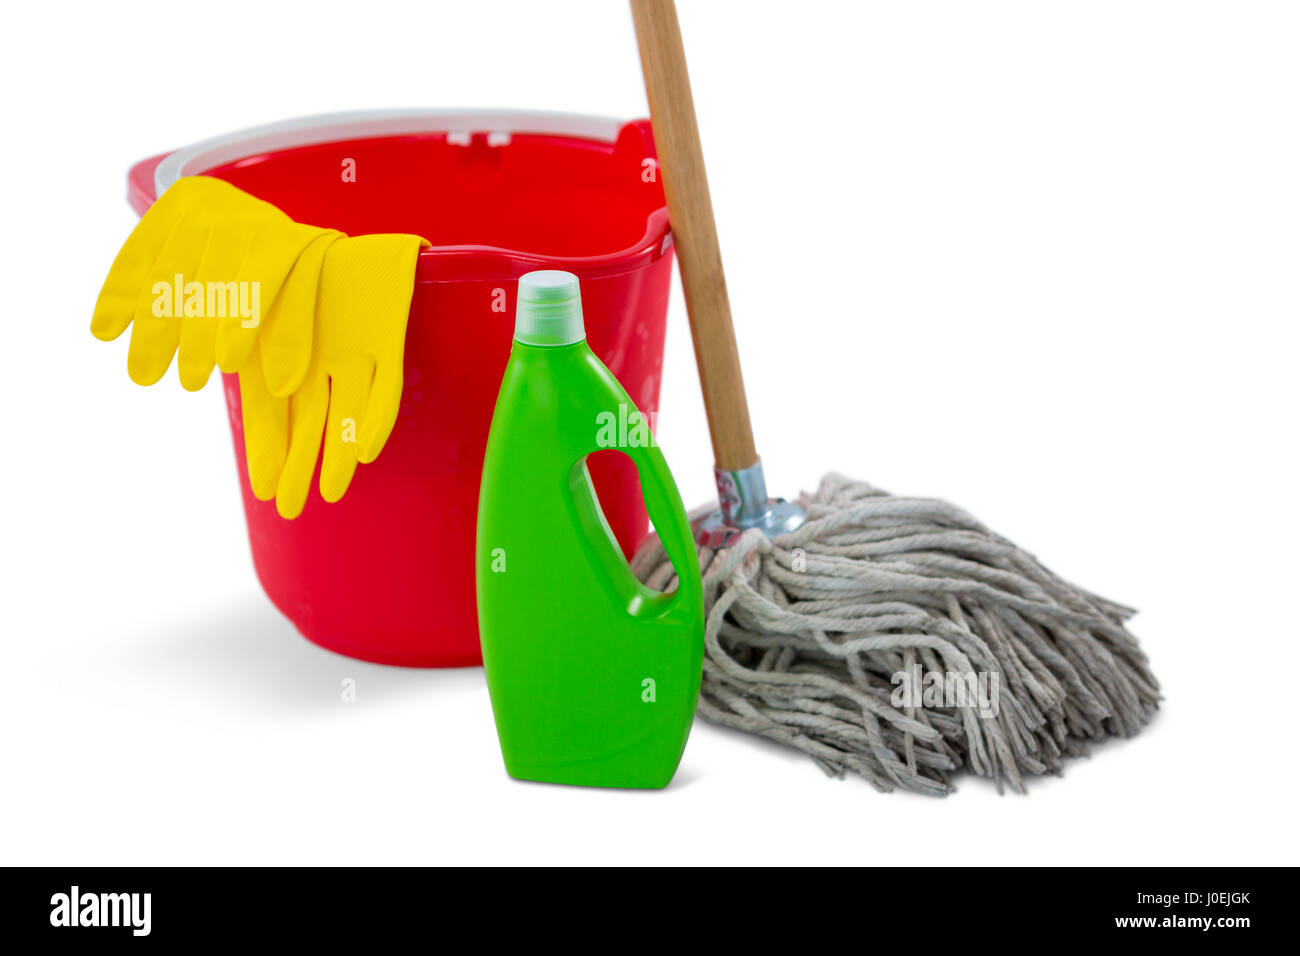 Close up of chemical bottle and mop with bucket against white background - Stock Image